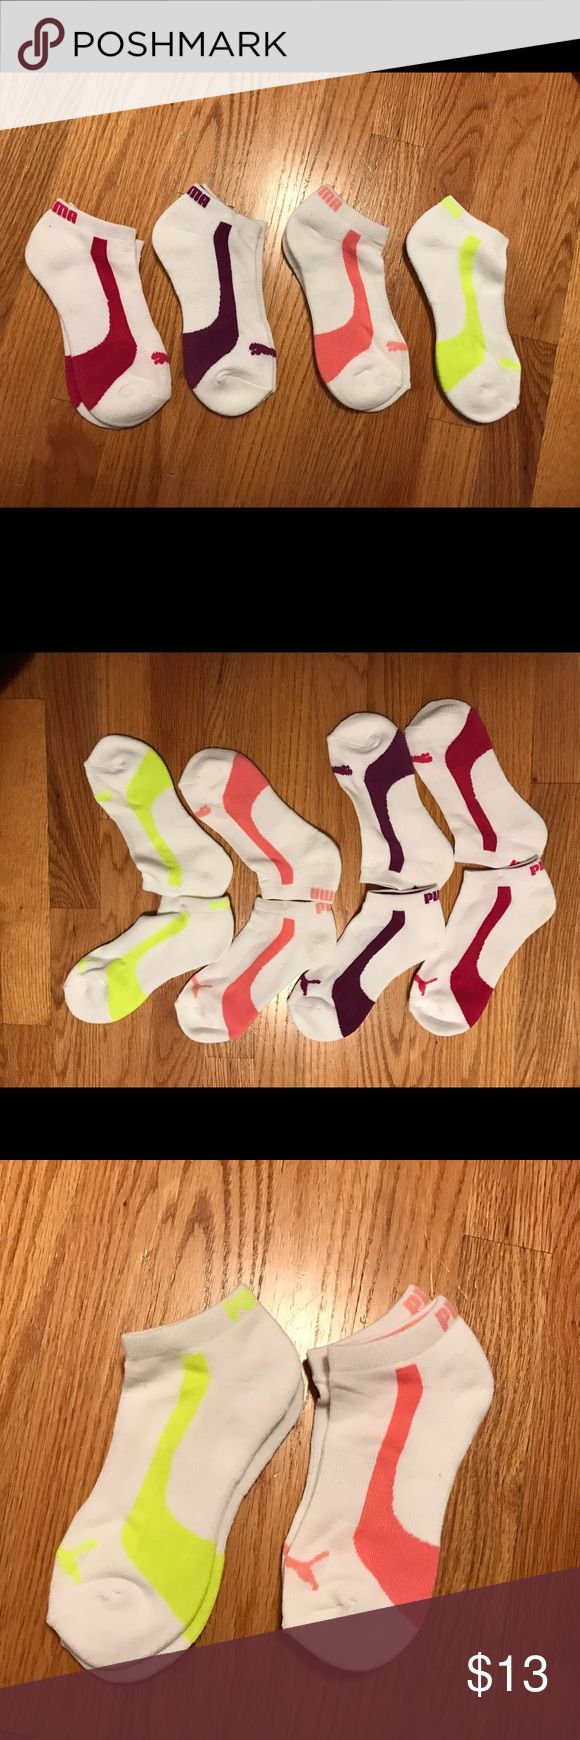 Brand new Womens Puma athletic ankle high socks Brand new Womens Puma athletic ankle high socks with choices of 4 colors!! Buy 2 for 13!!! Other